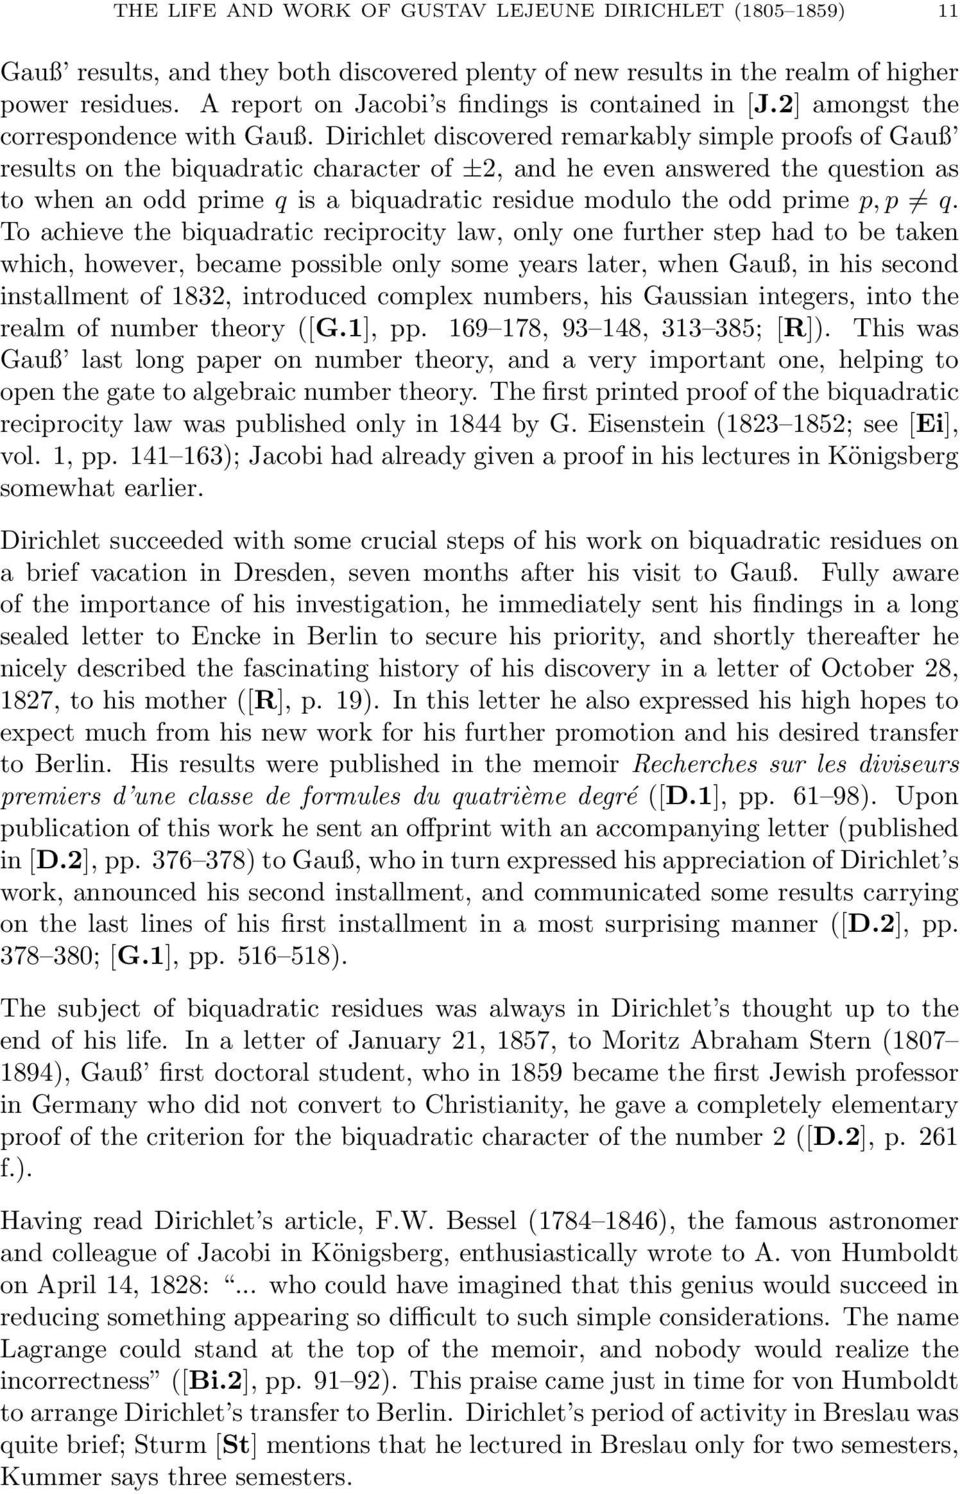 Dirichlet discovered remarkably simple proofs of Gauß results on the biquadratic character of ±2, and he even answered the question as to when an odd prime q is a biquadratic residue modulo the odd